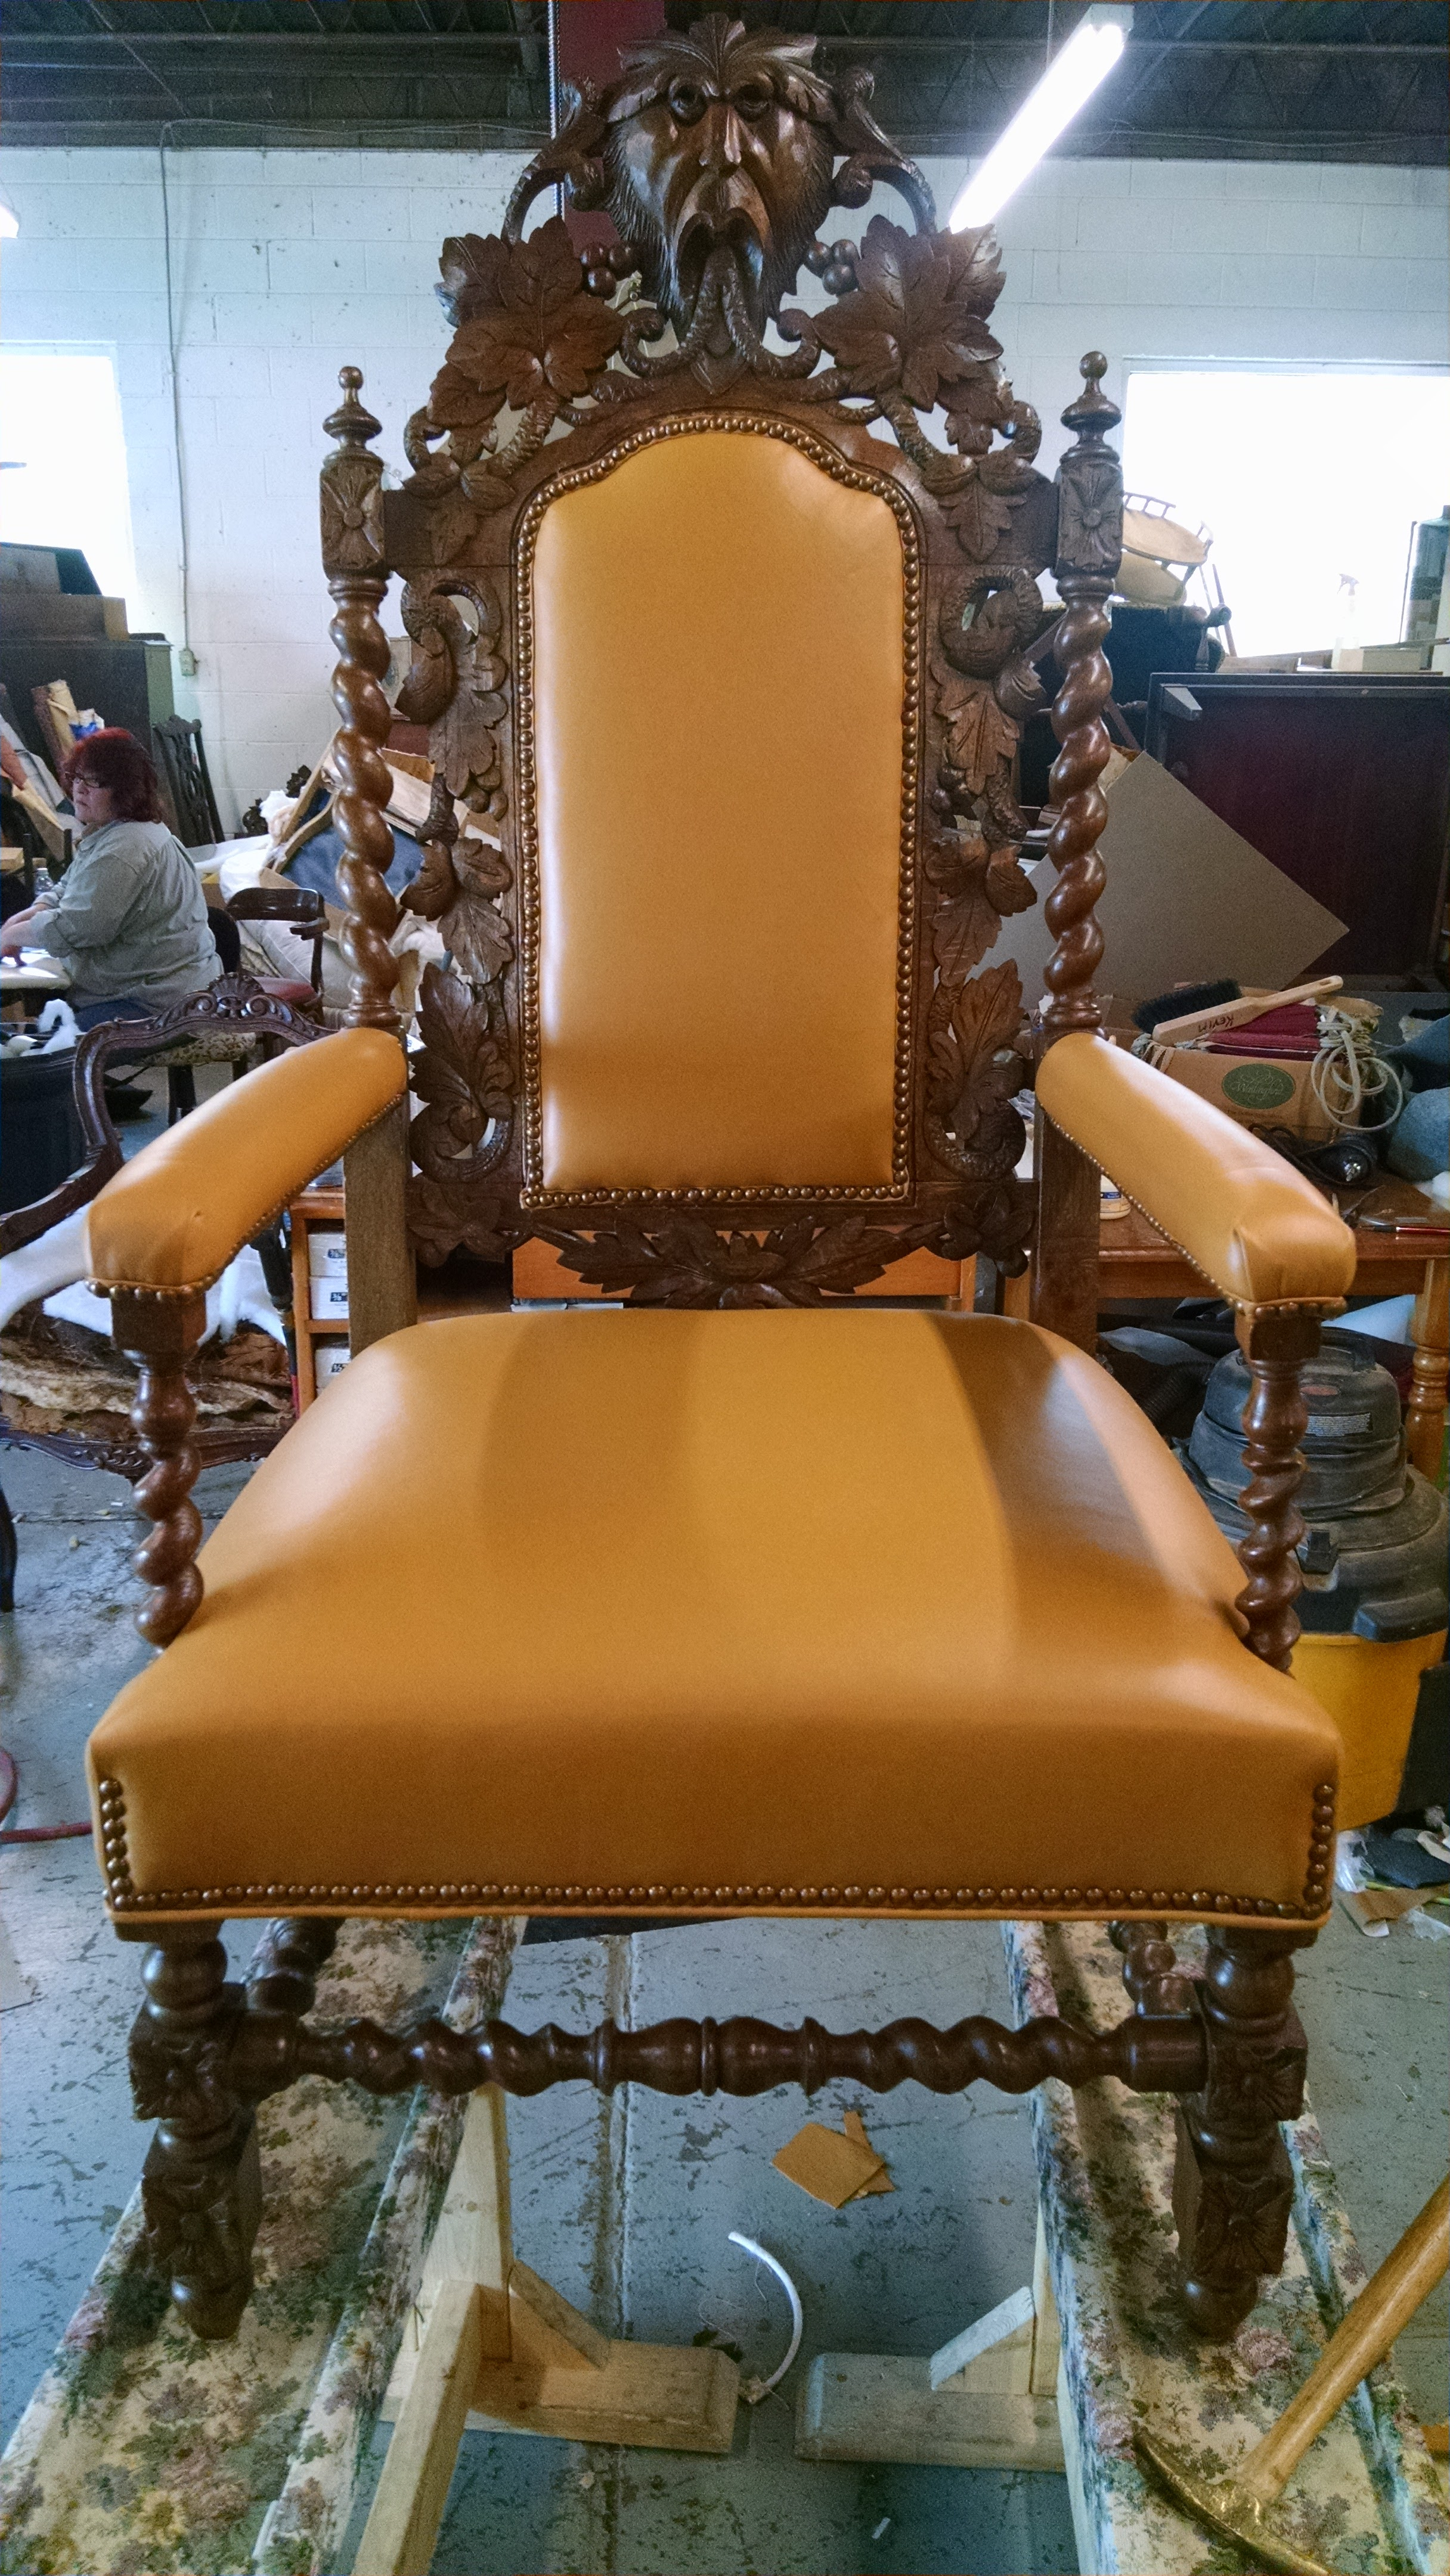 Tri County Furniture Restoration Has More Than 36 Years Of Experience  Providing Antique Furniture Restoration Services For Homeowners In  Cincinnati And ...